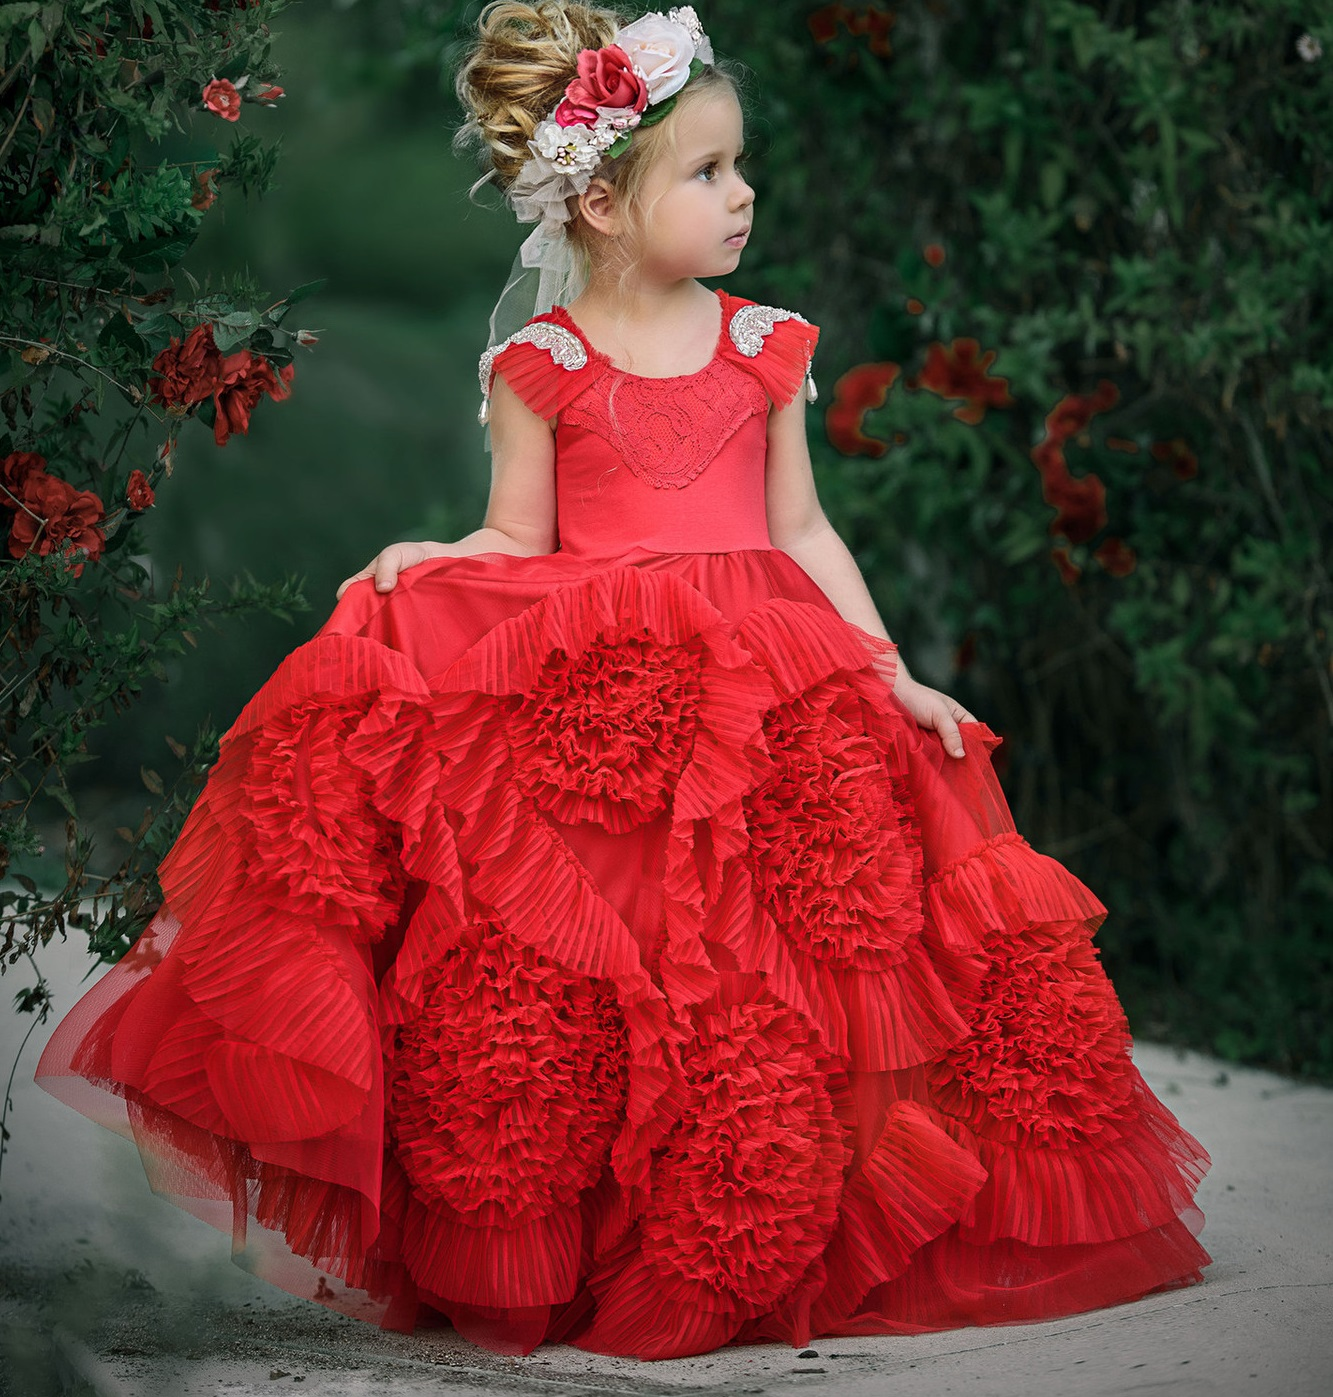 pp789 Europe and America round-neck lowers Ball Gown girls' stage Dress flowers children's wedding Dresses Girl Princess Dress round neck checked fringed dress